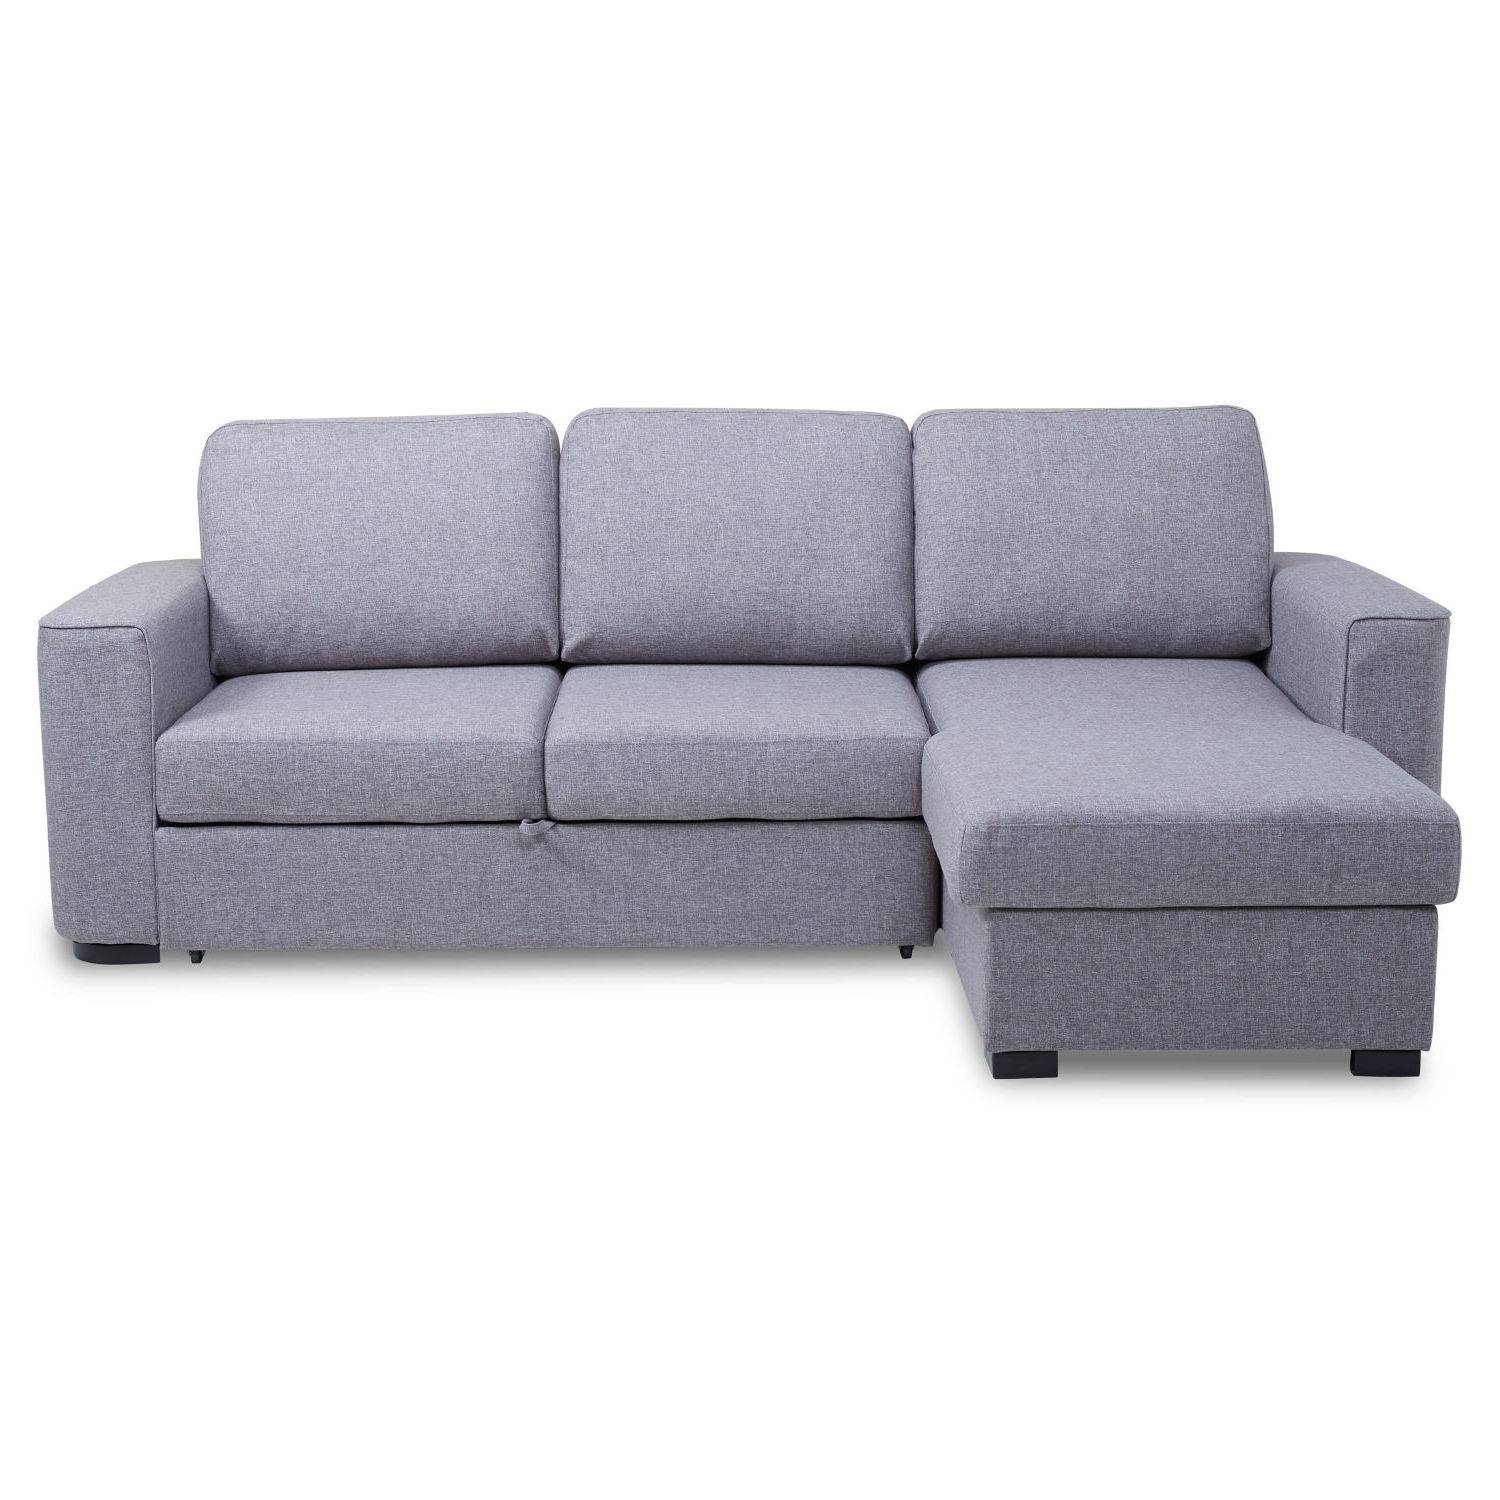 Ronny Fabric Corner Chaise Sofa Bed With Storage – Next Day Within Corner Sofa Beds (View 13 of 15)